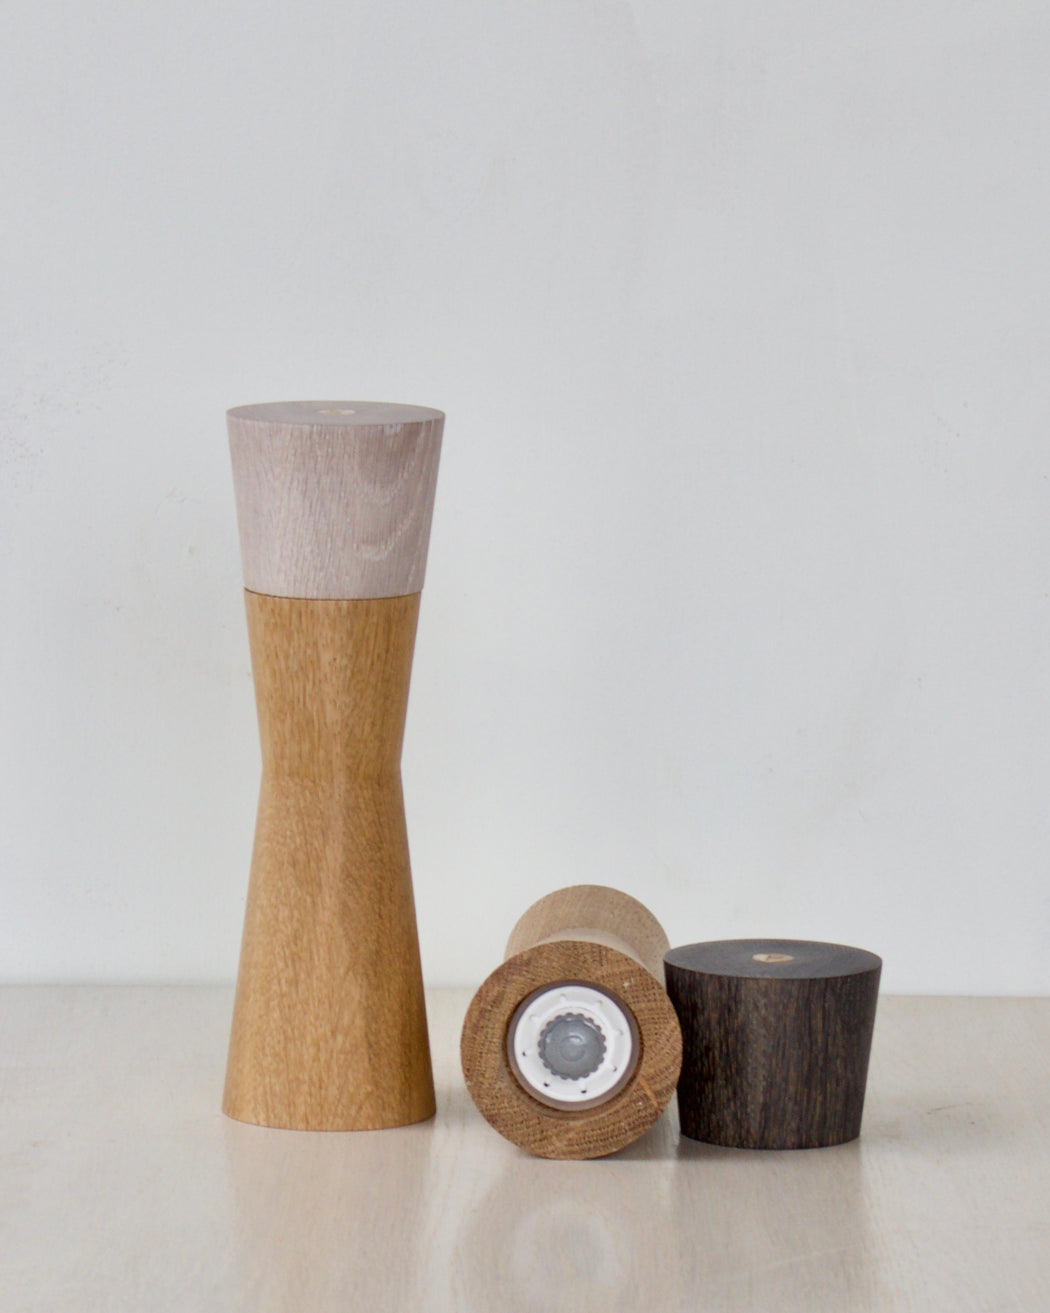 salt grinder and pepper grinder